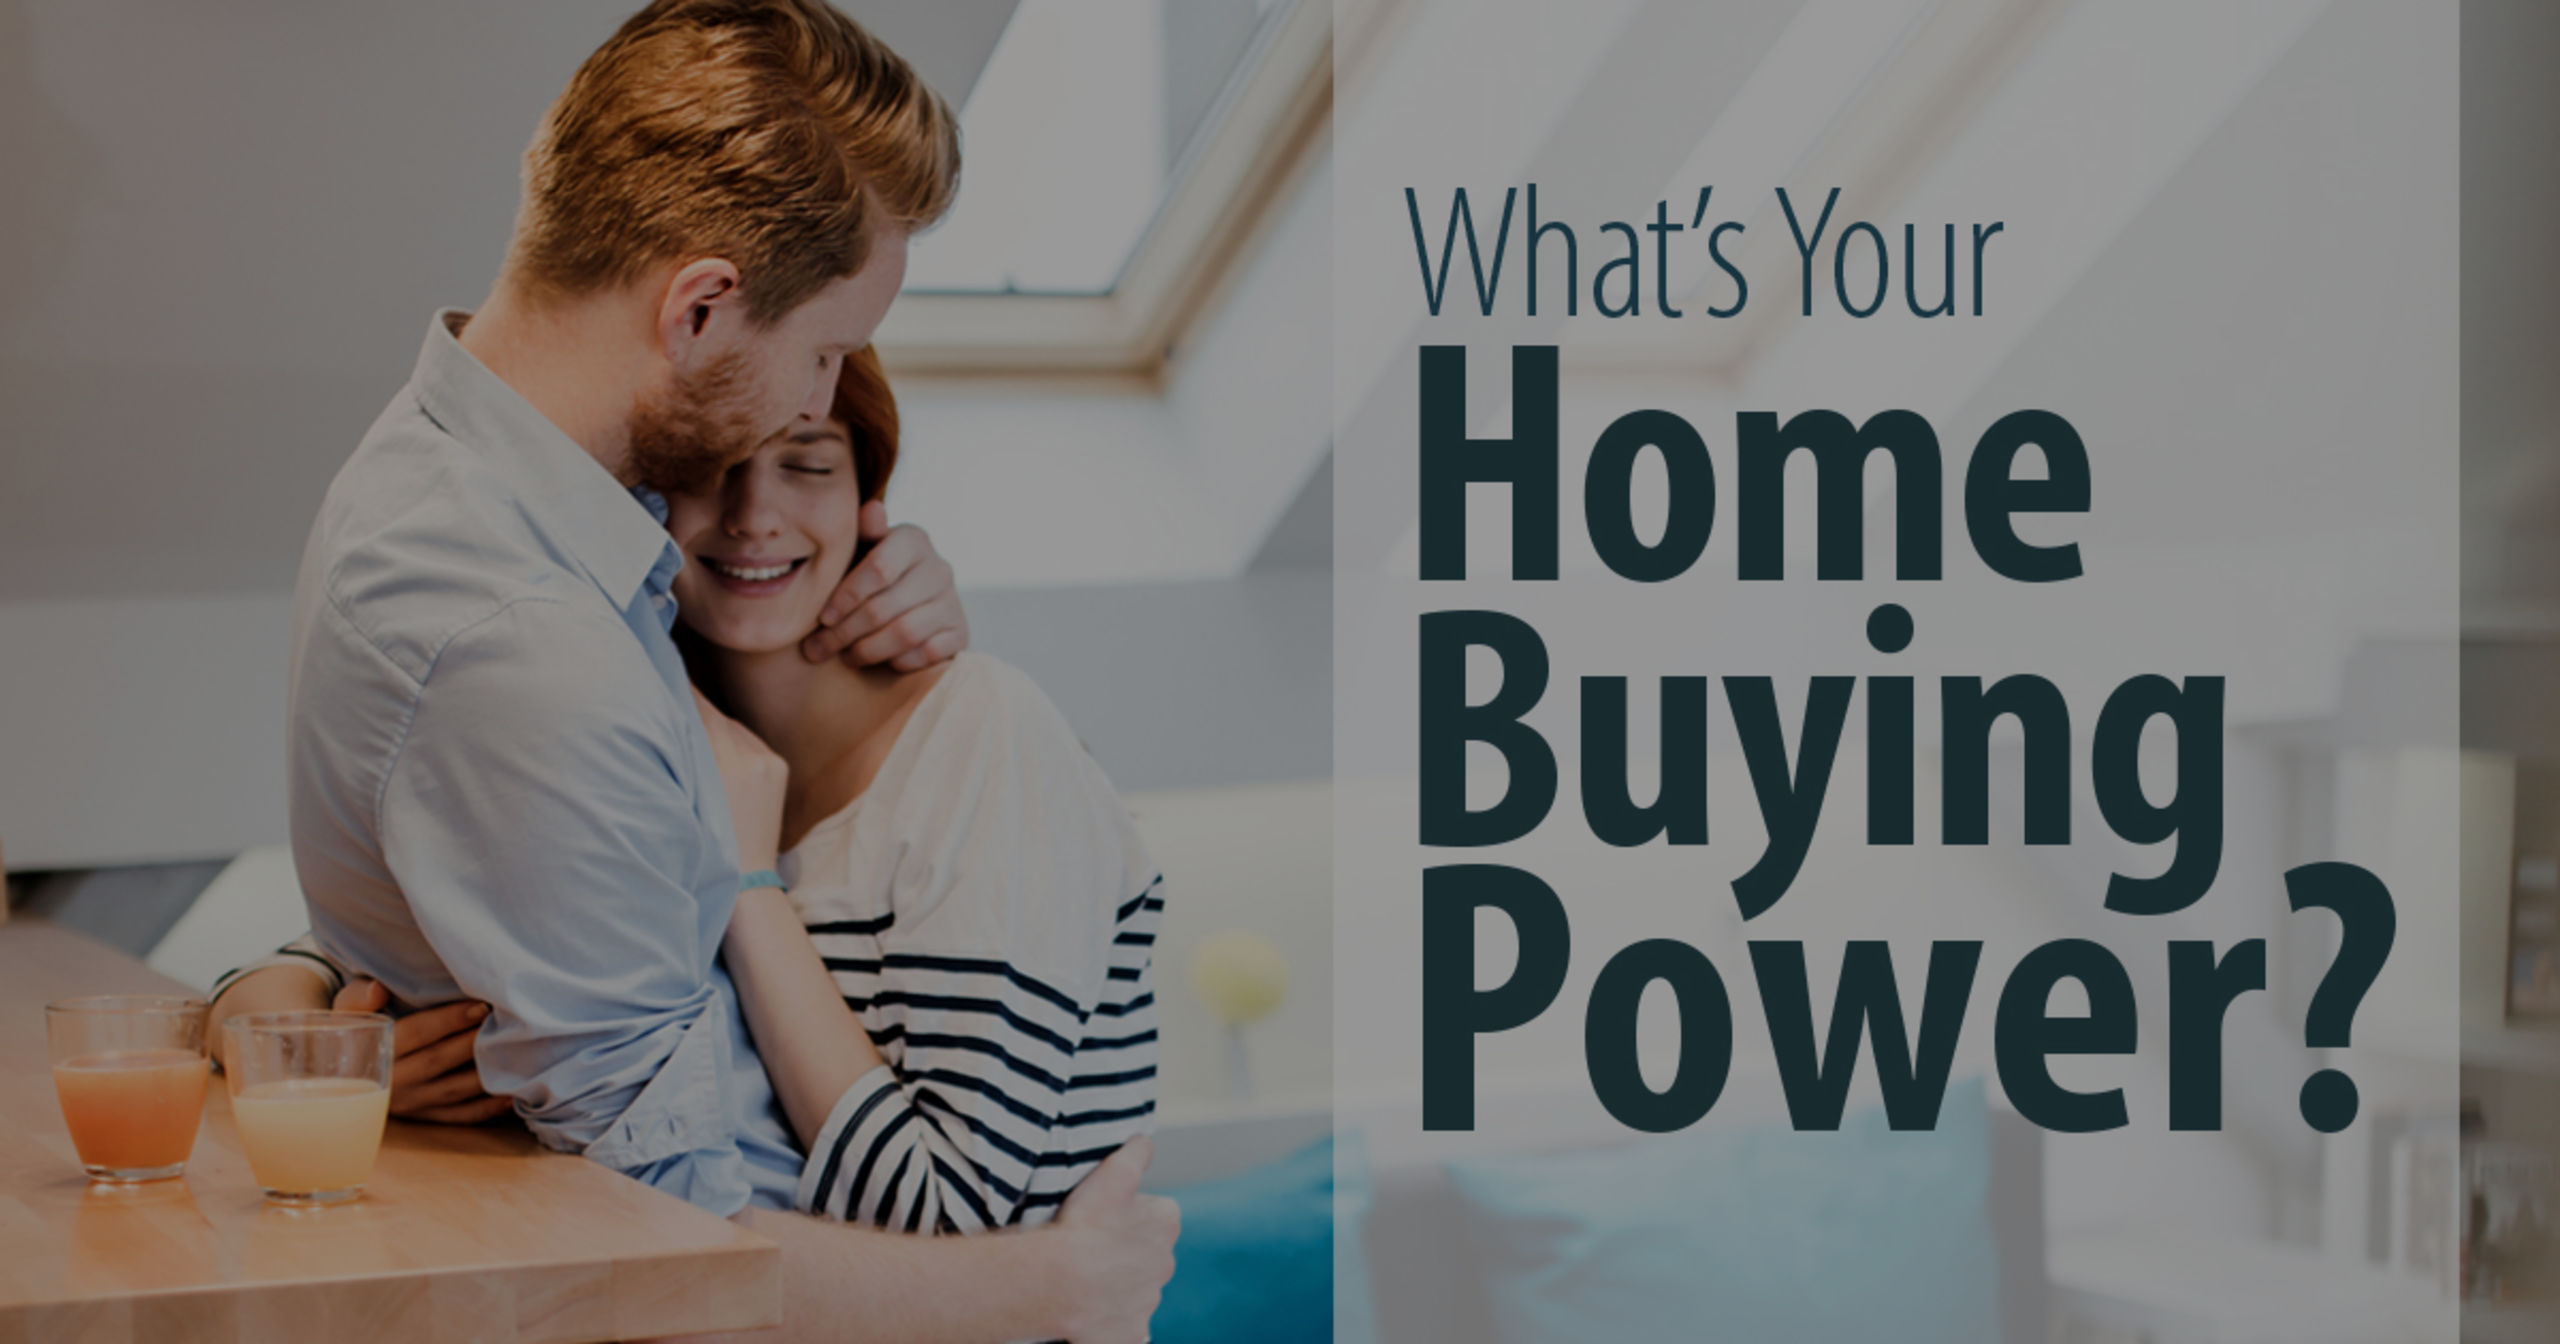 What's Your Home Buying Power